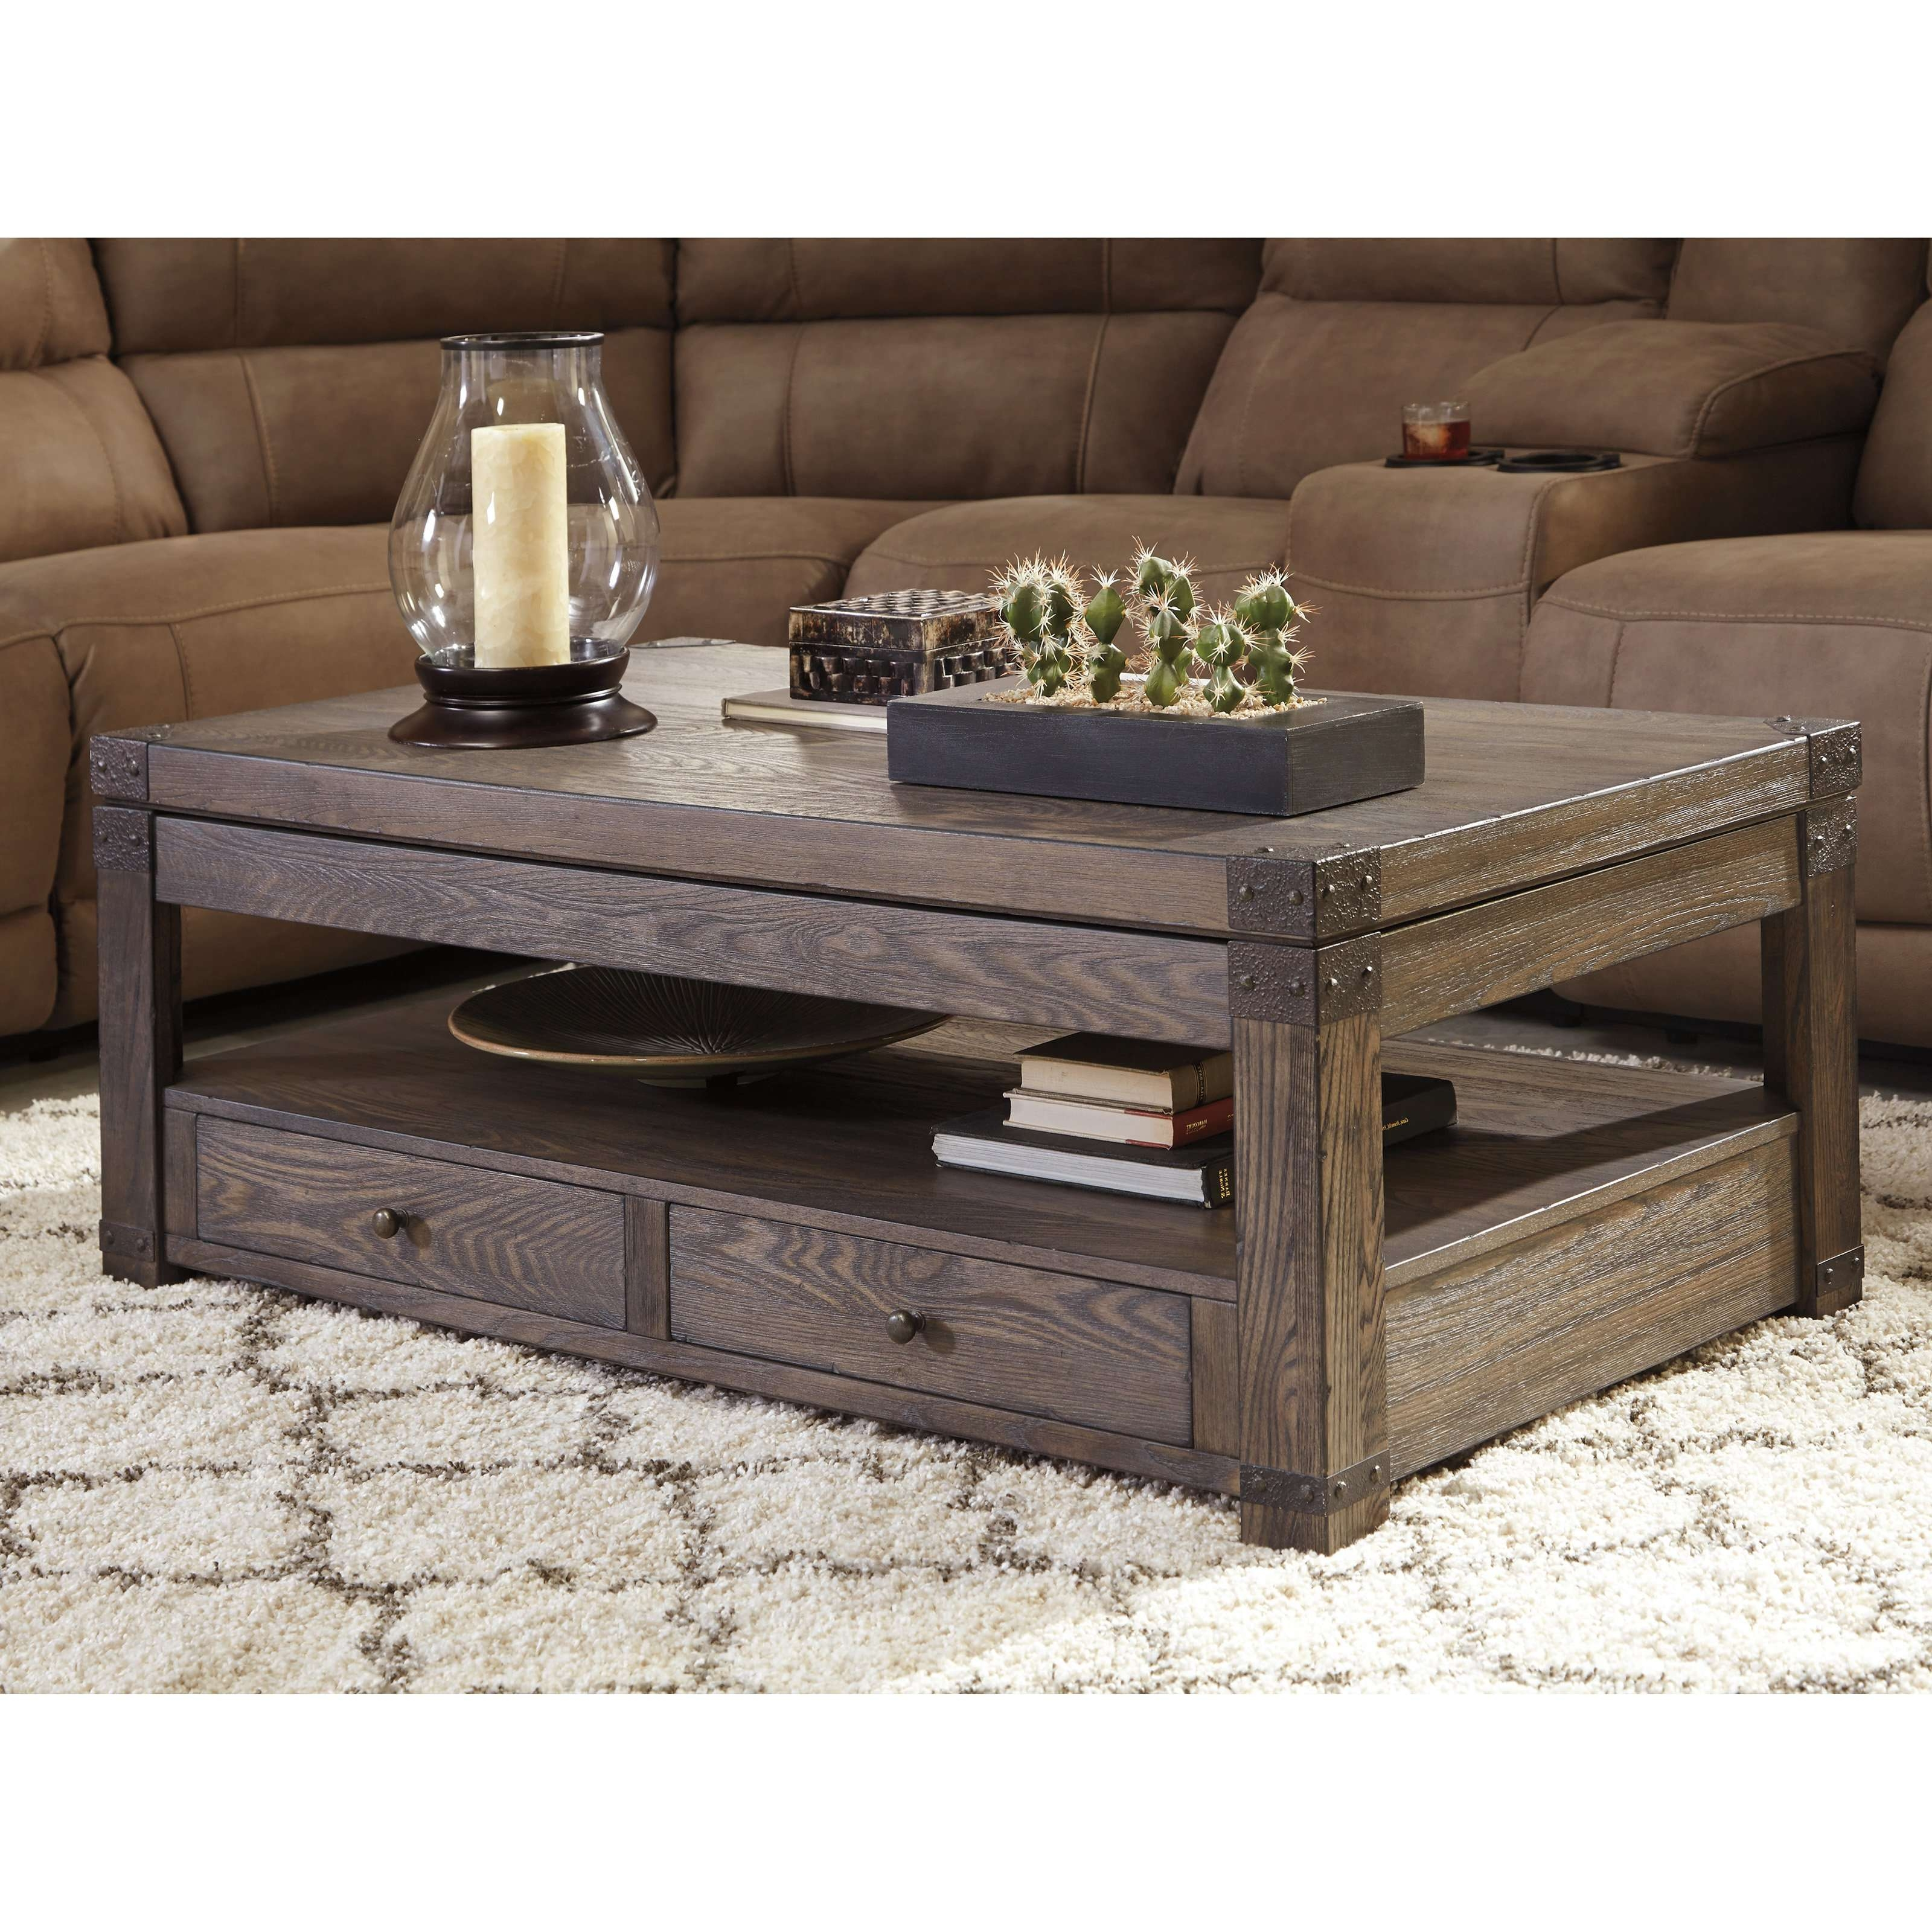 Most Recent Raisable Coffee Tables Pertaining To Sauder Cannery Bridge Lift Top Coffee Table (View 13 of 20)